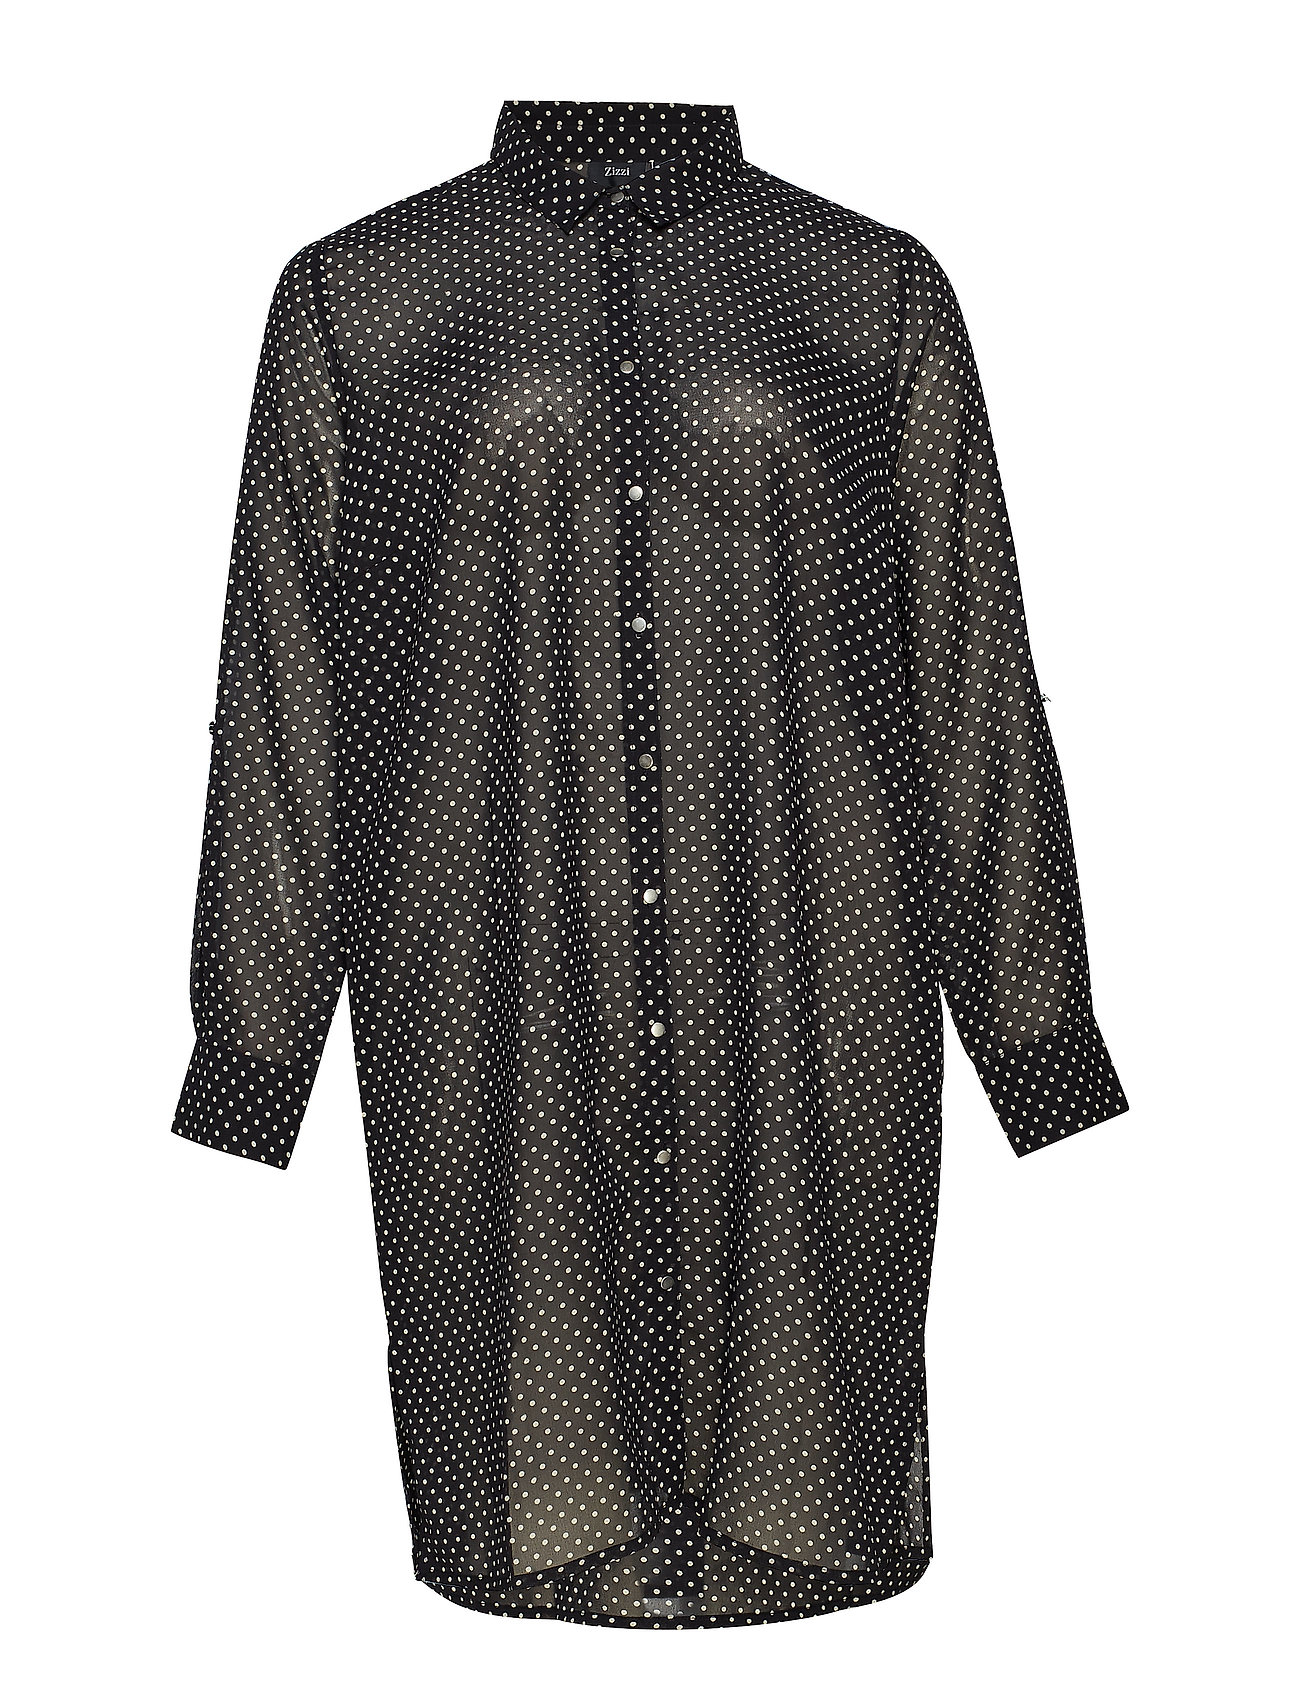 Zizzi XMARLEY, L/S, LONG SHIRT BOO - BLACK